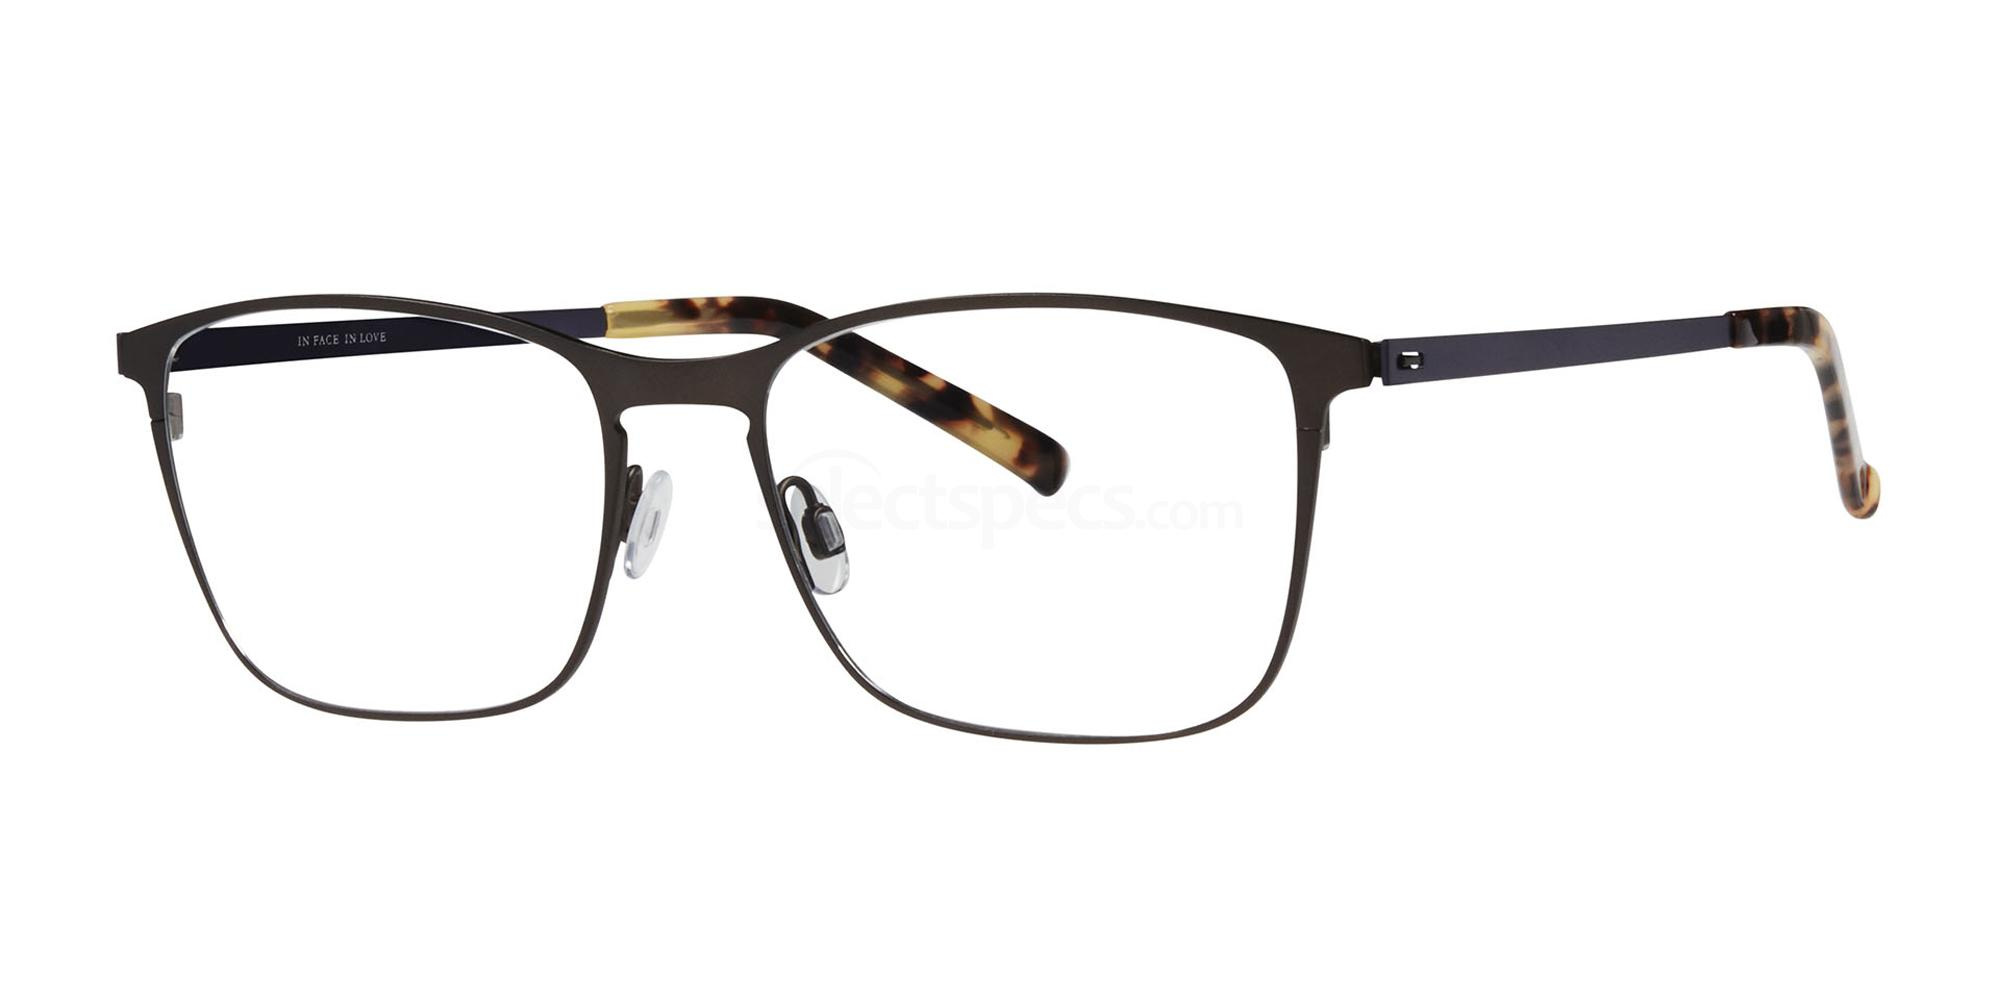 5031 IF1319 Glasses, Inface in Love